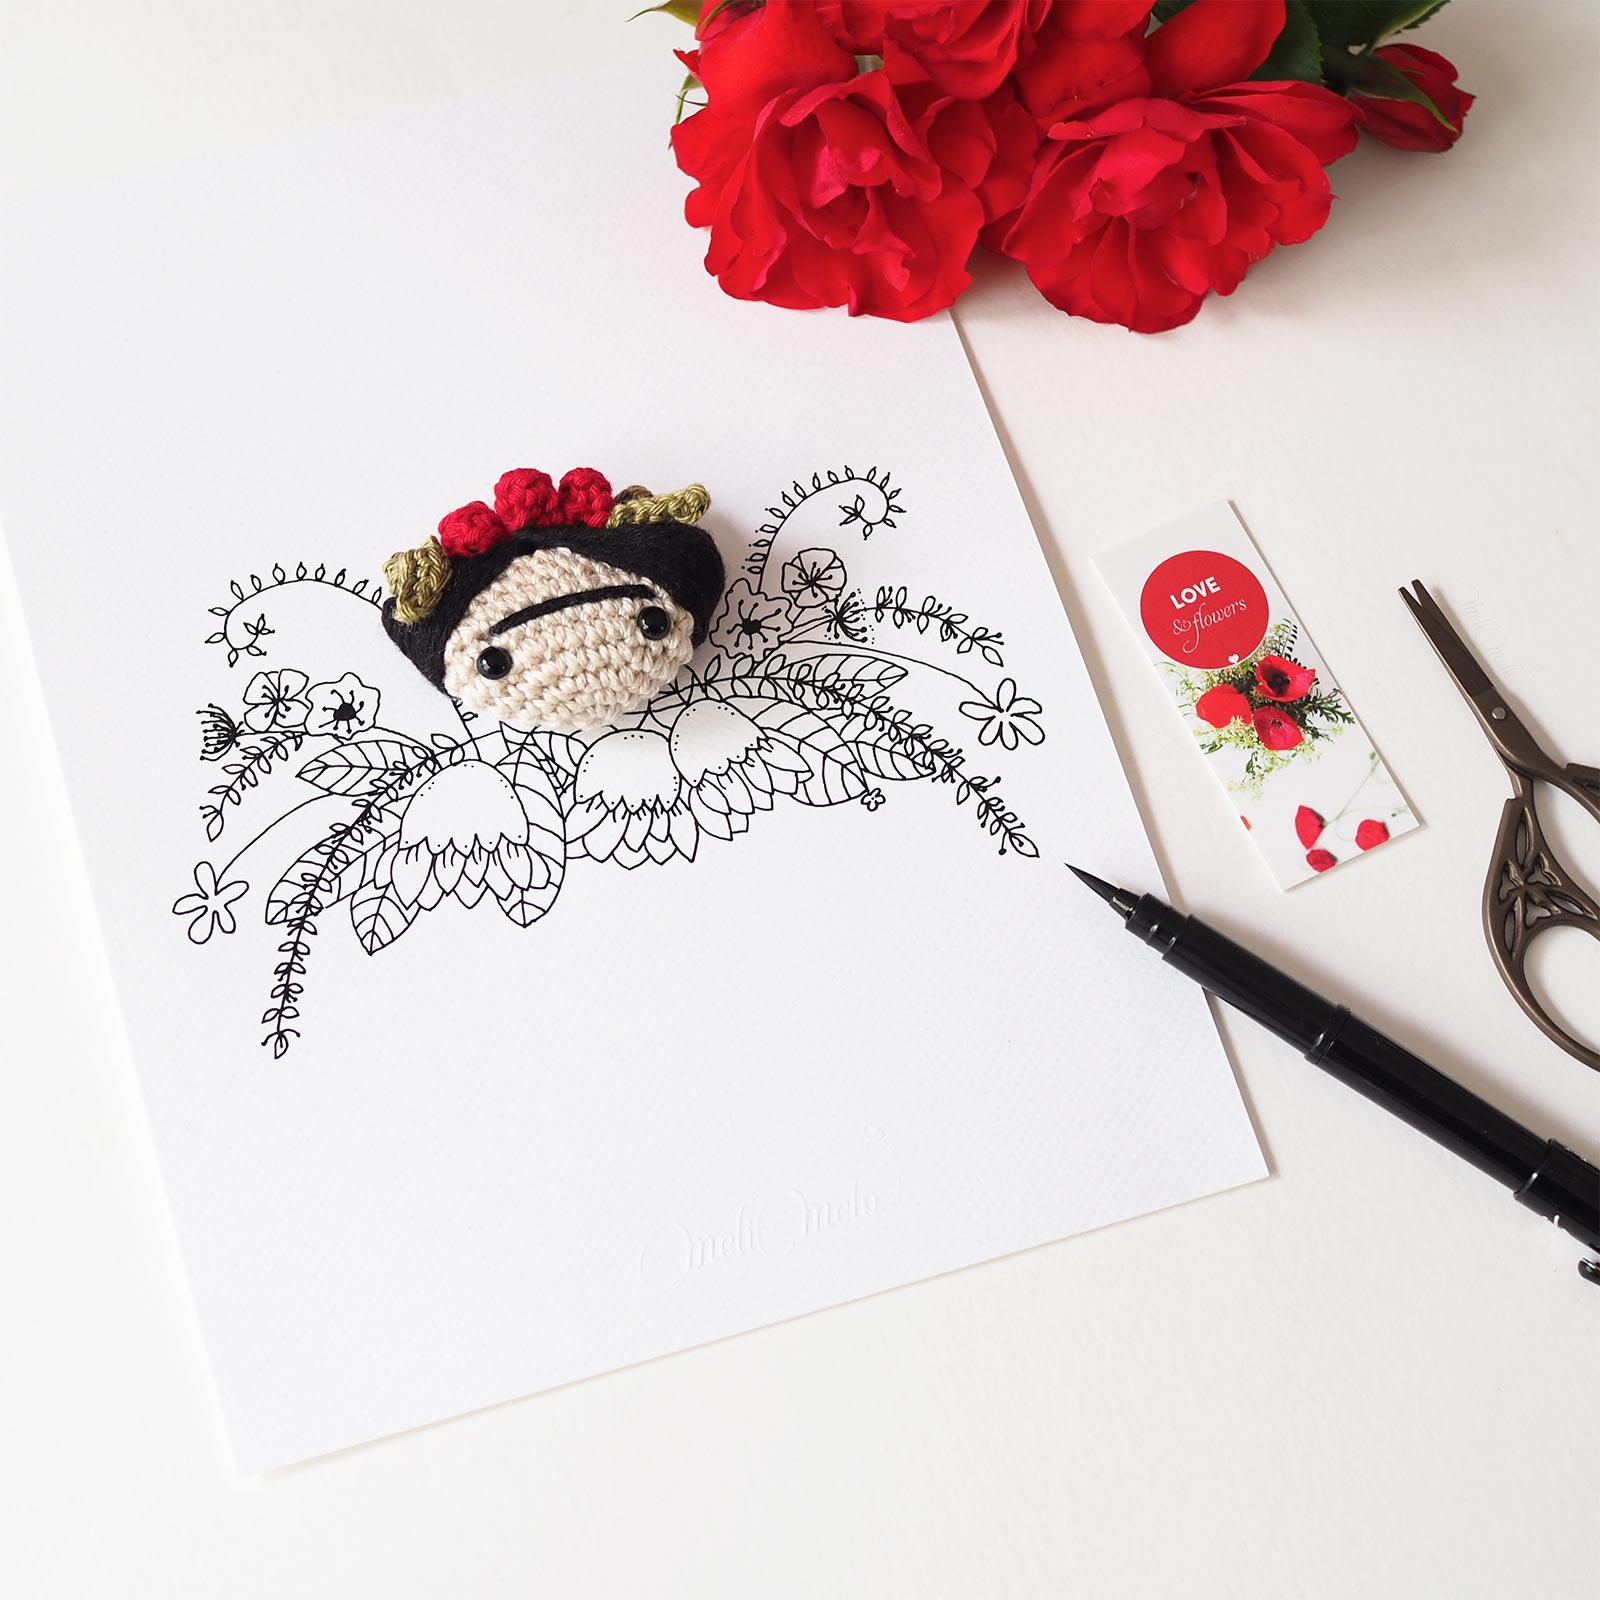 Frida Kahlo couronne fleurs rose feuilles MeliMelo illustration ink drawing crochet laboutiquedemelimelo